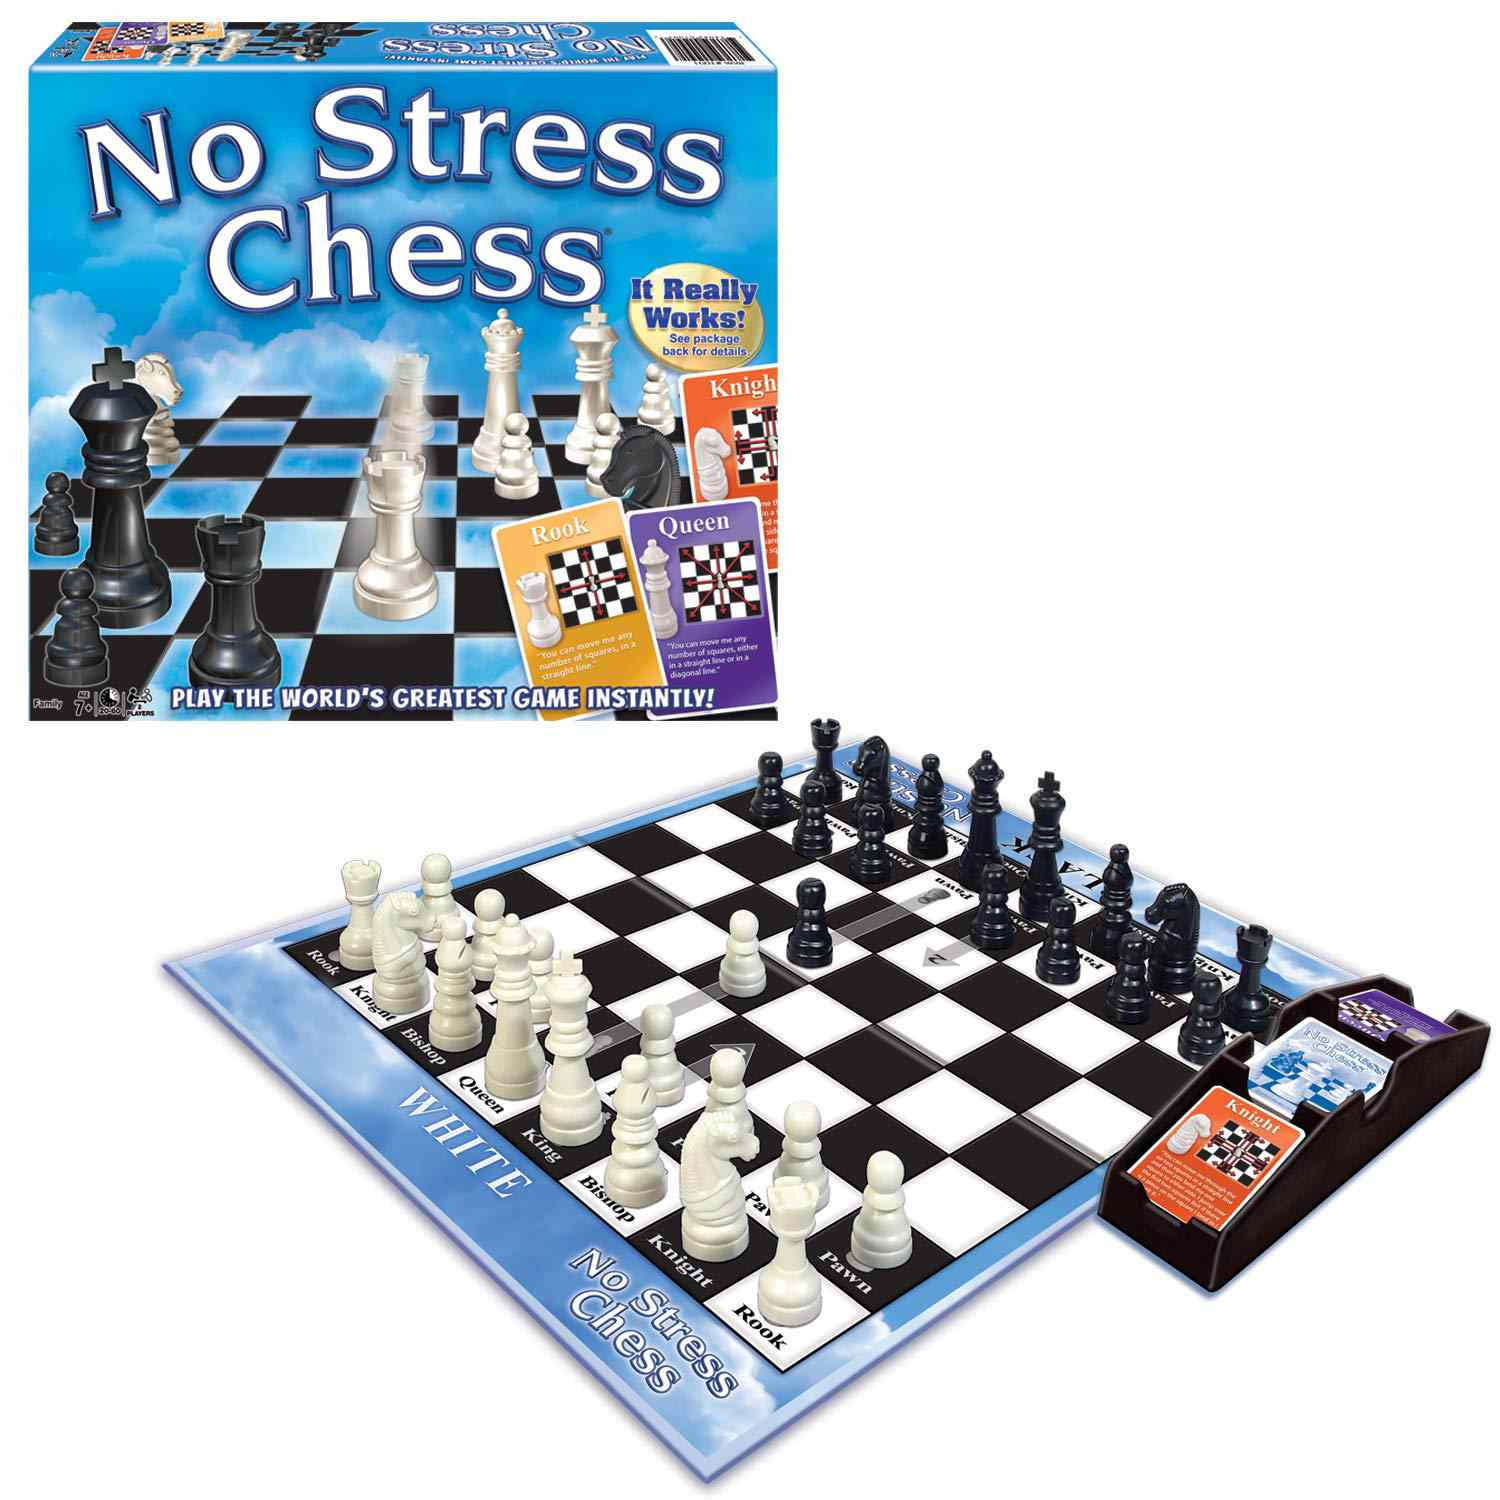 An easy family-style chess game called No Stress Chess.